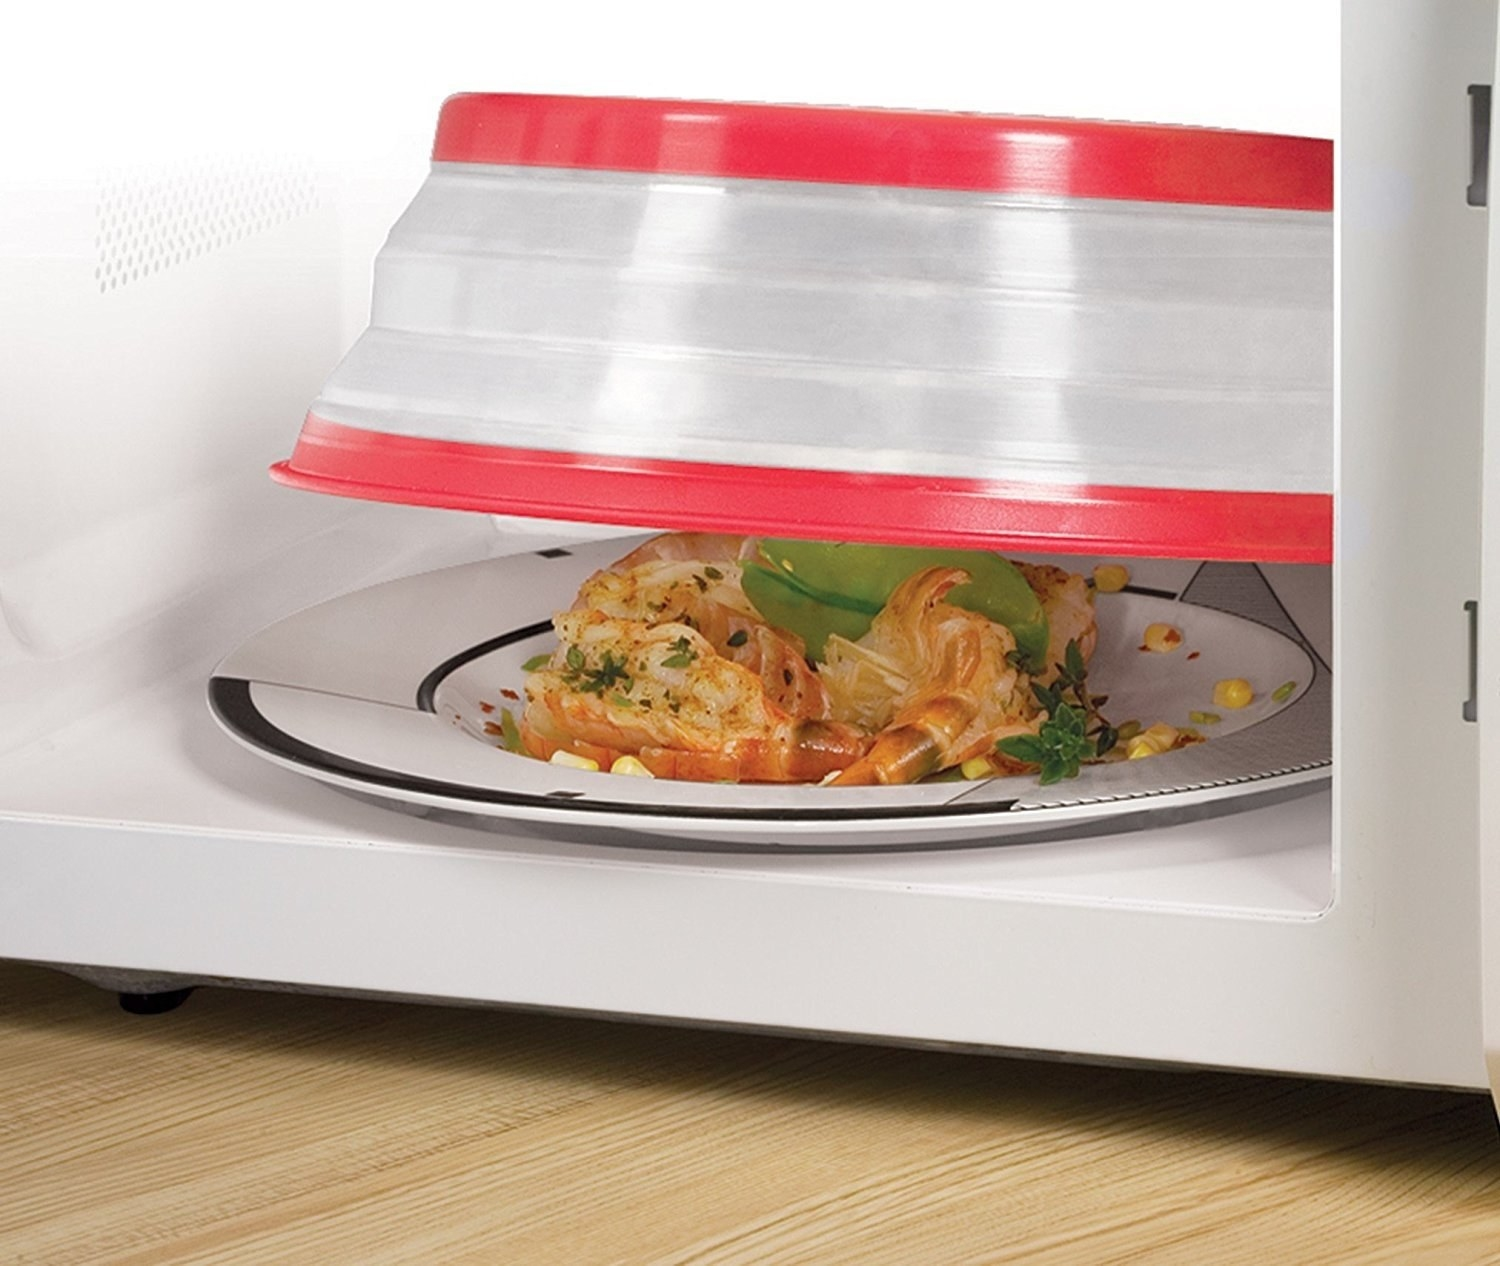 The plastic splatter guard with a red rim on top of a plate of leftovers in a microwave